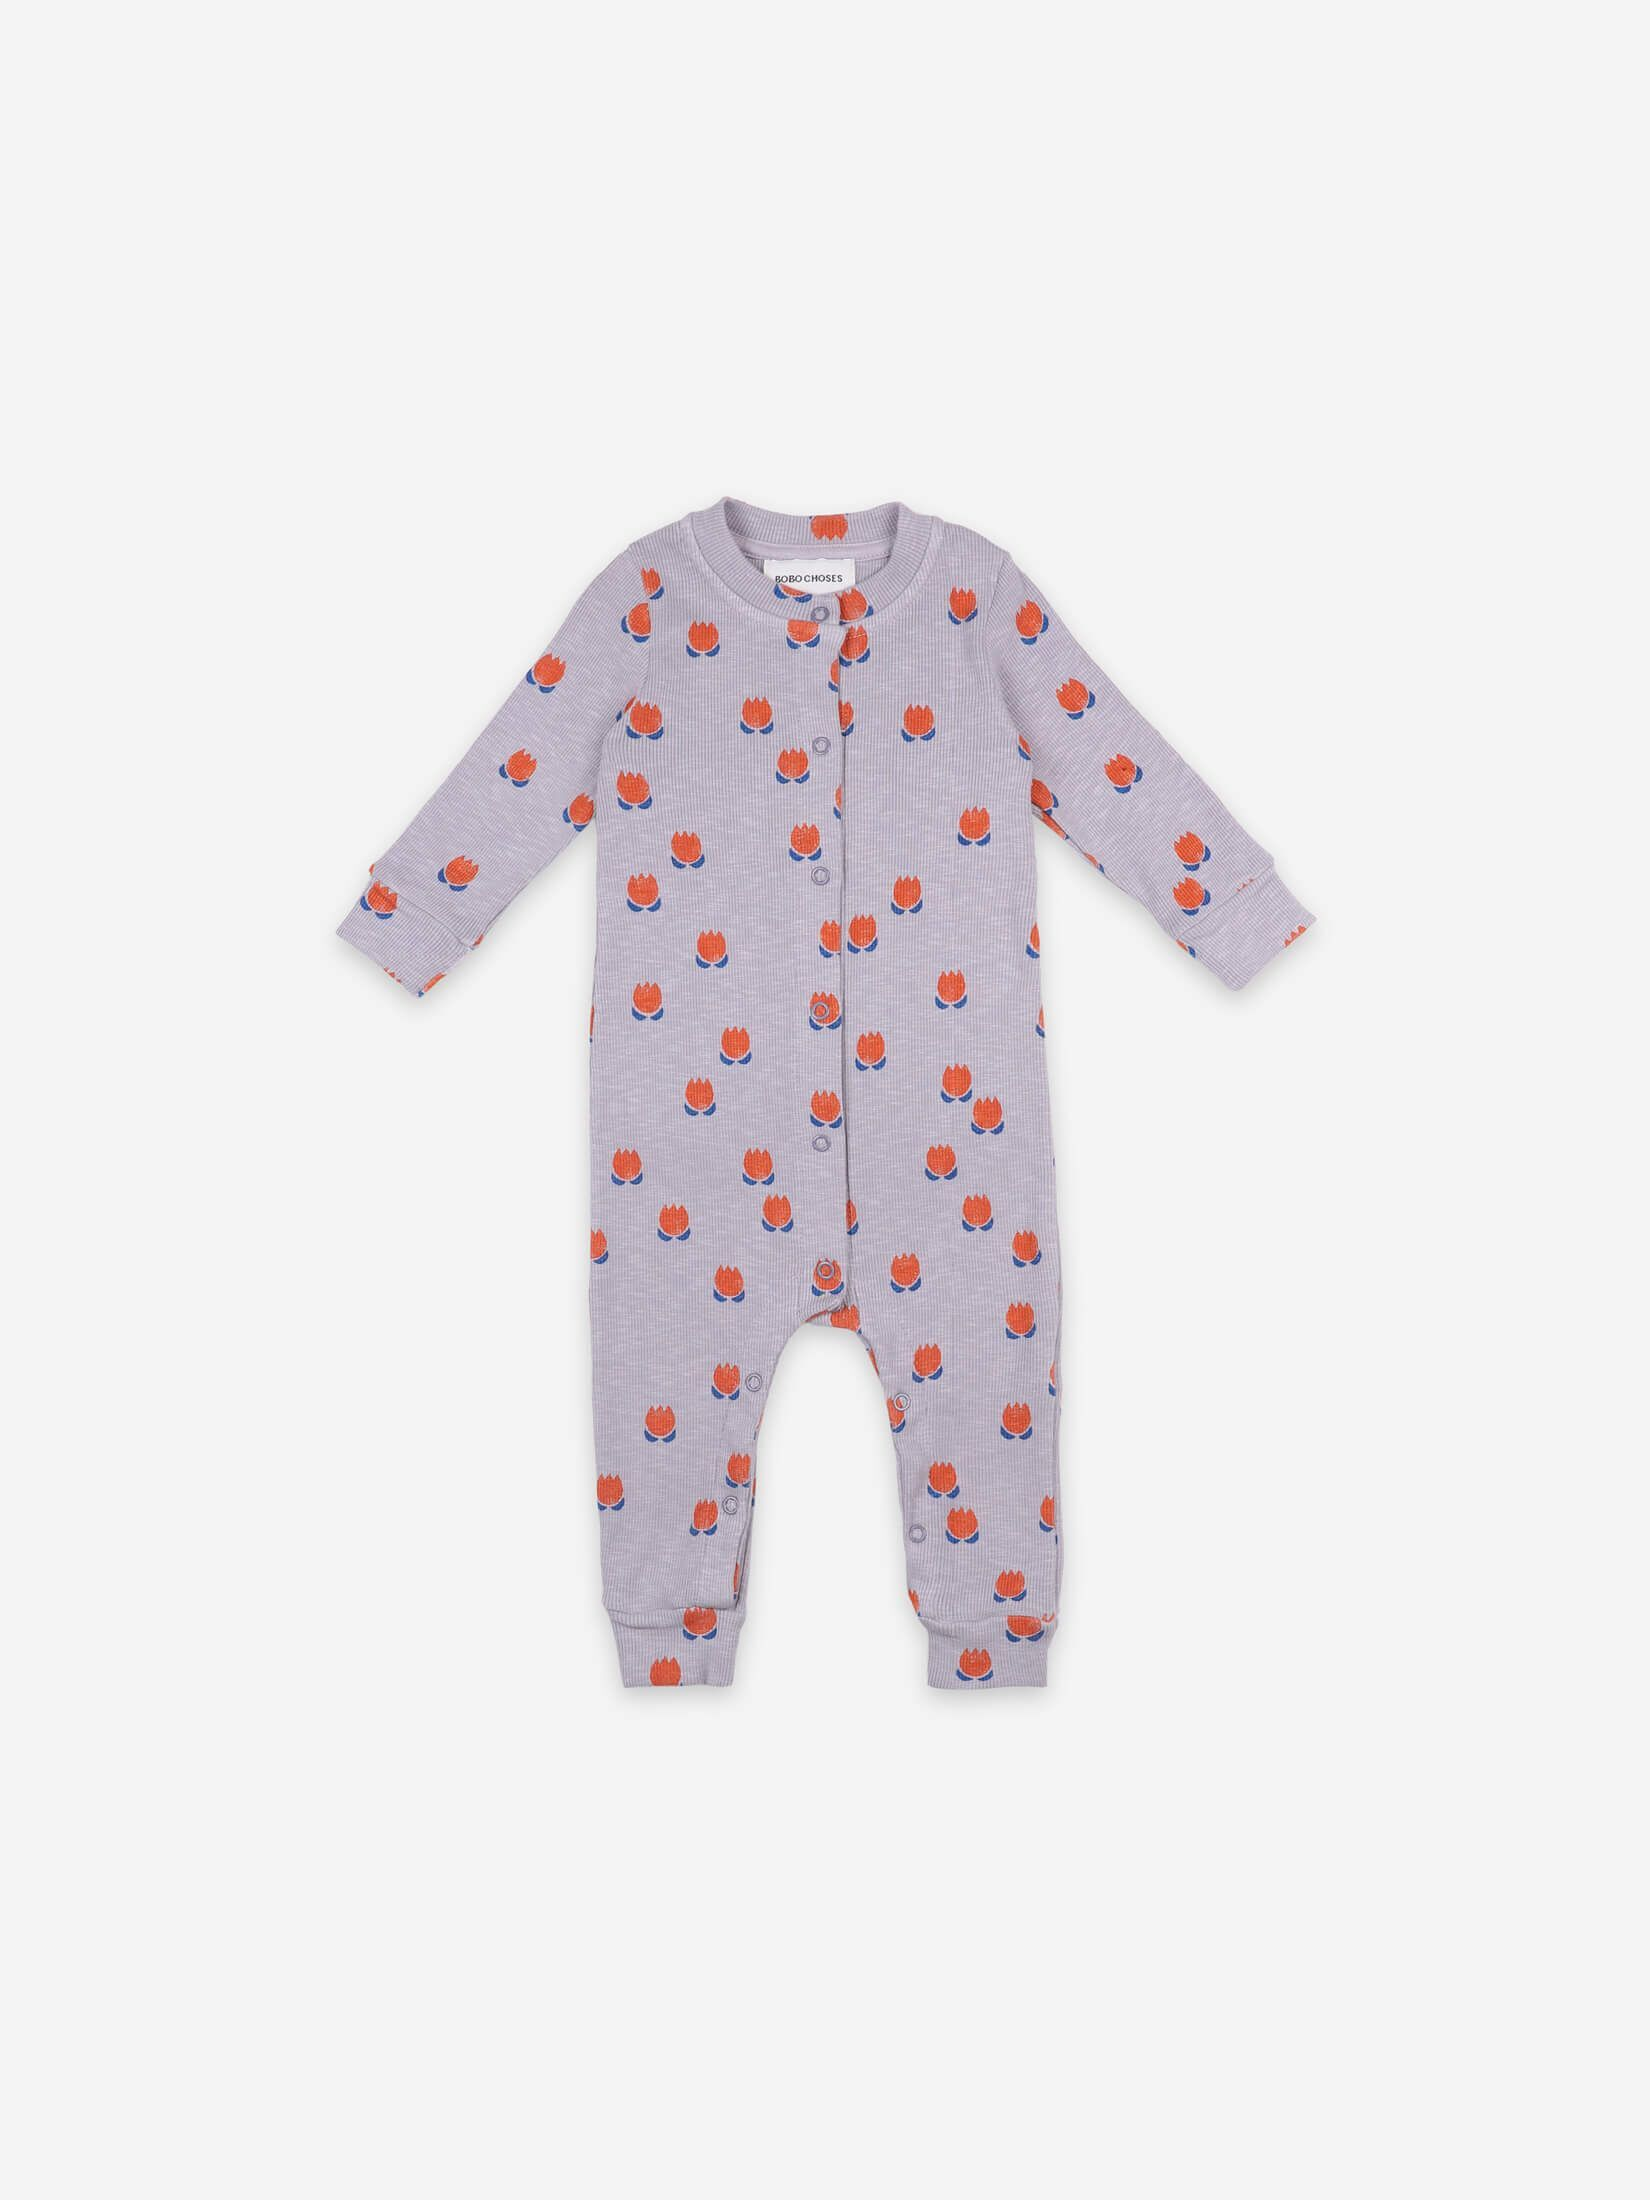 BOBO CHOSES ボボショセス Chocolate Flowers All Over Rib Overall size:6-12M(70-80)